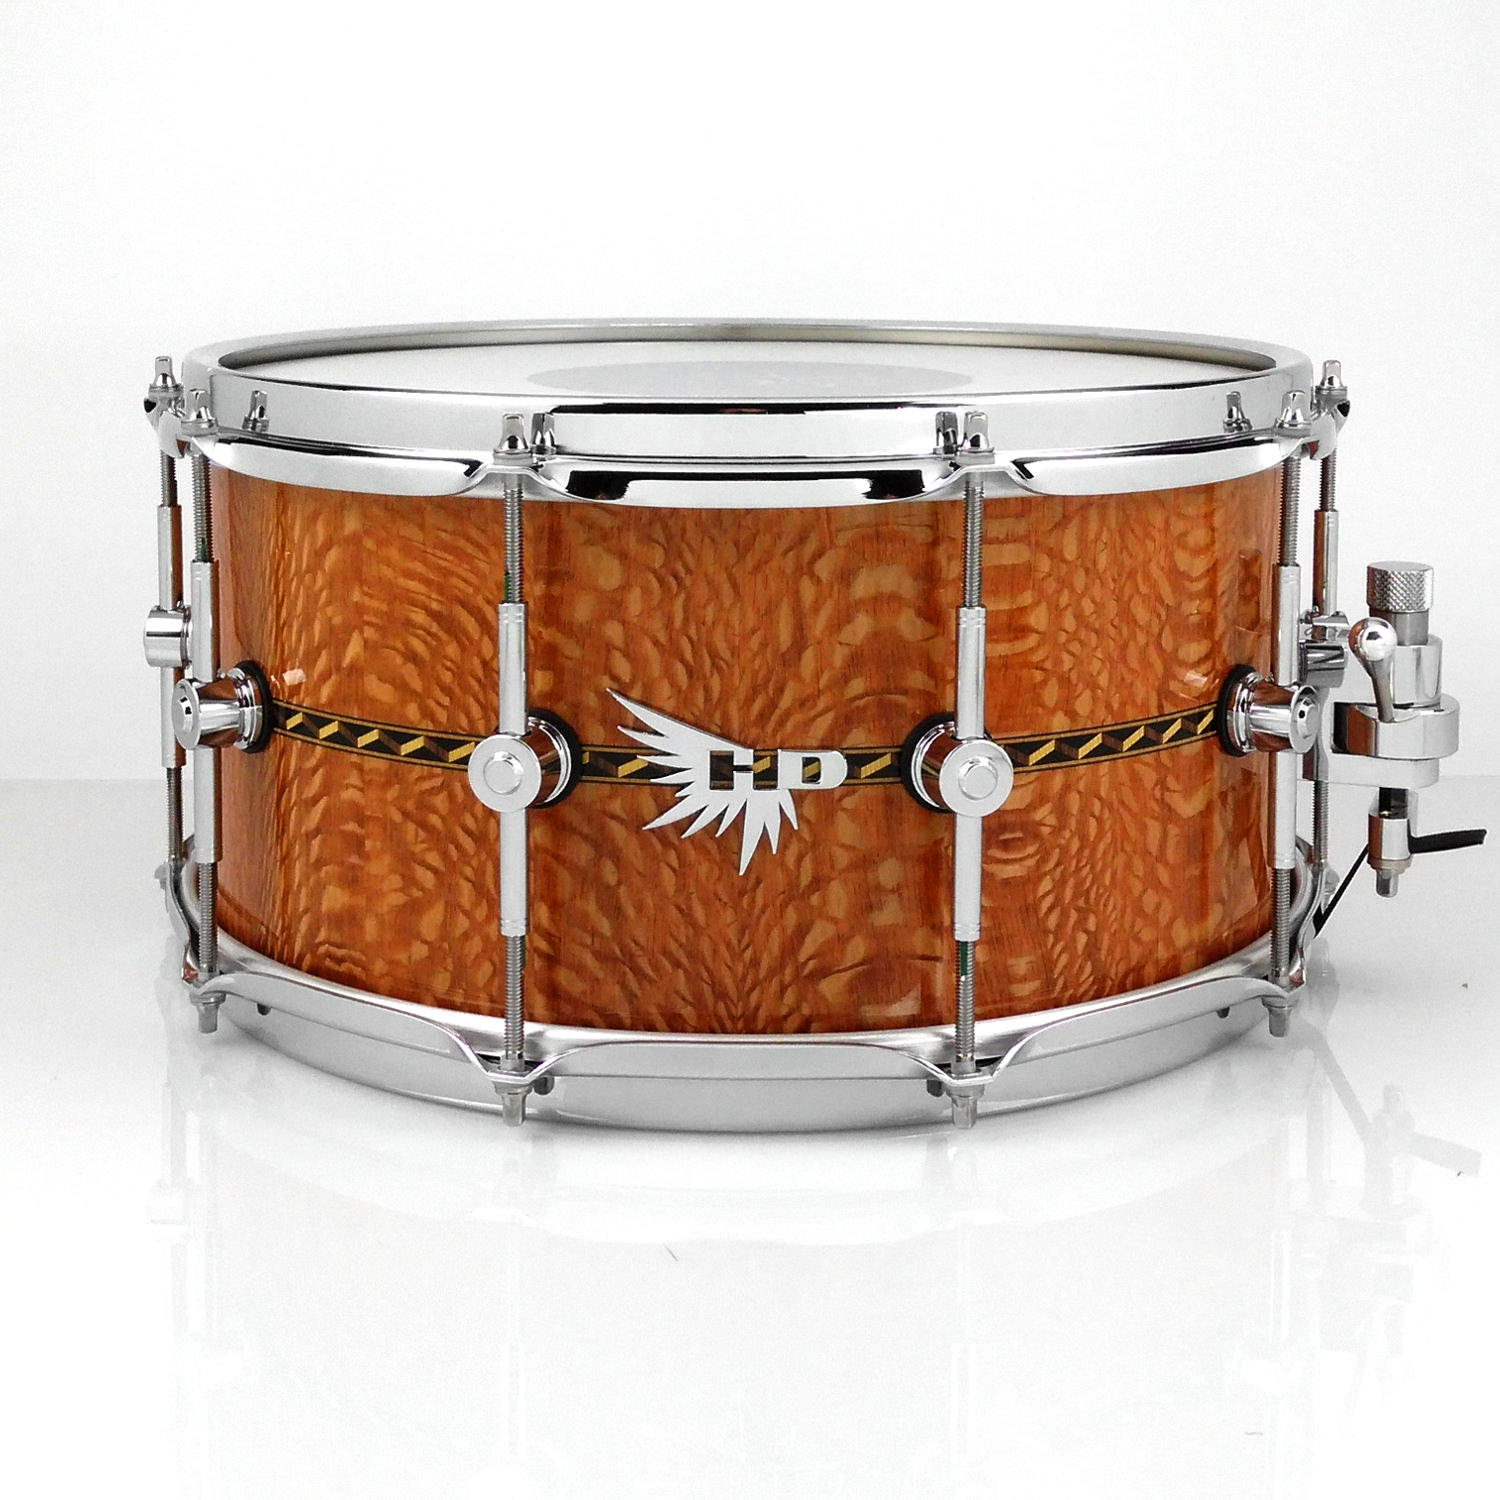 Best Snare Drum Craviotto Hendrix Drums HD Pearl Lacewood Stave